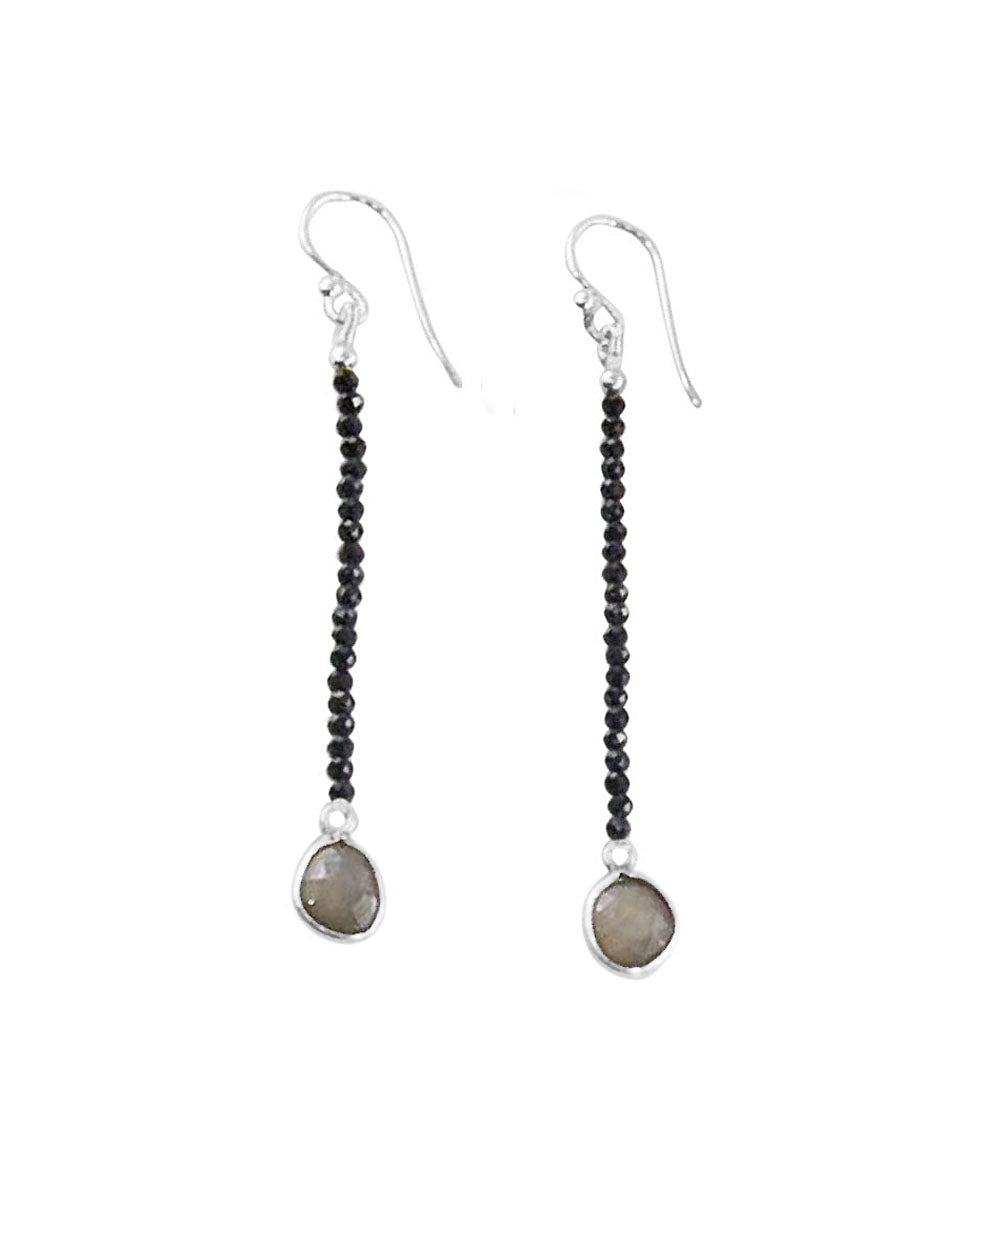 Empowered Dangle Drop Earrings -  Black Spinel